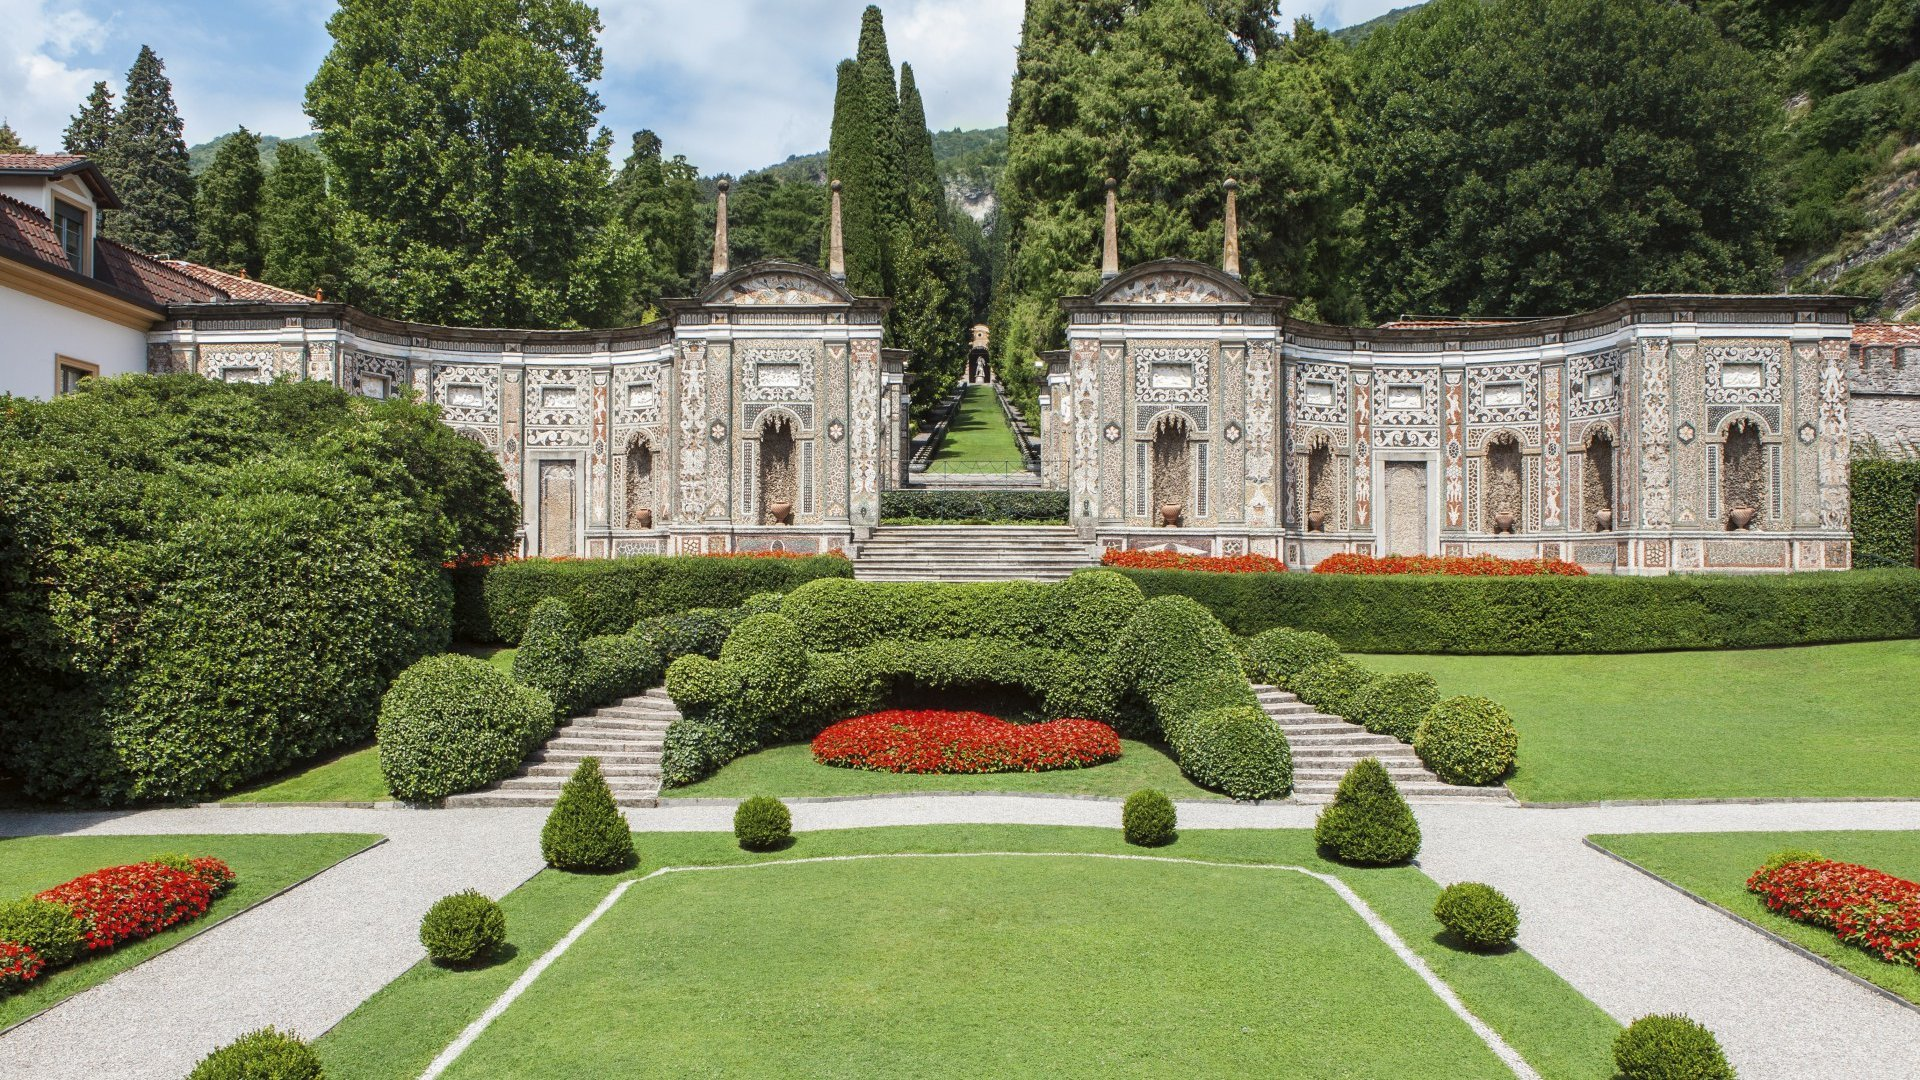 Villa D'Este entrance Como lake